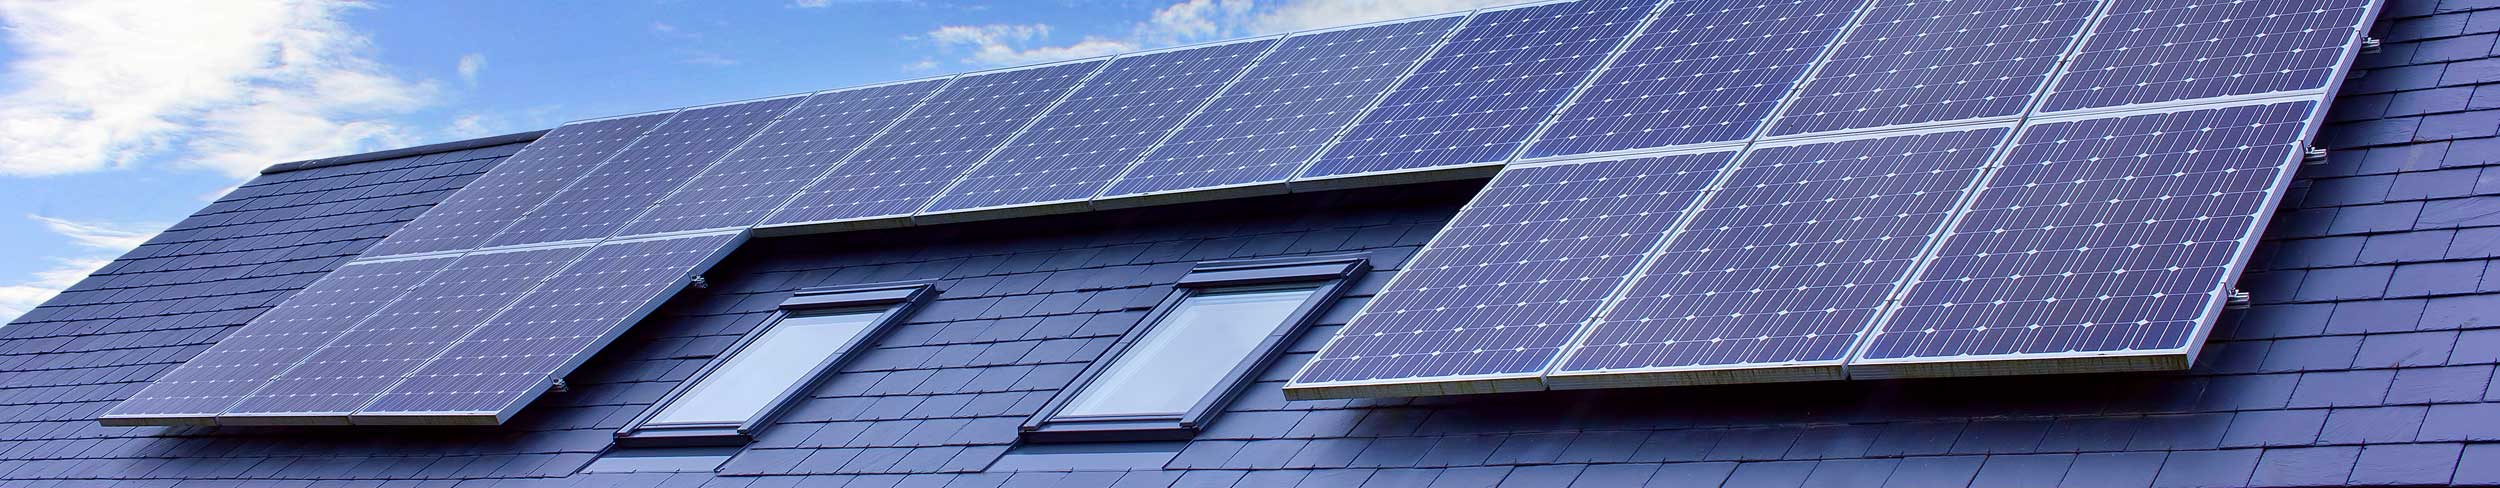 Energy efficient tax credits for 2015 - Section 45l Tax Credit Energy Efficient Home Tax Credit